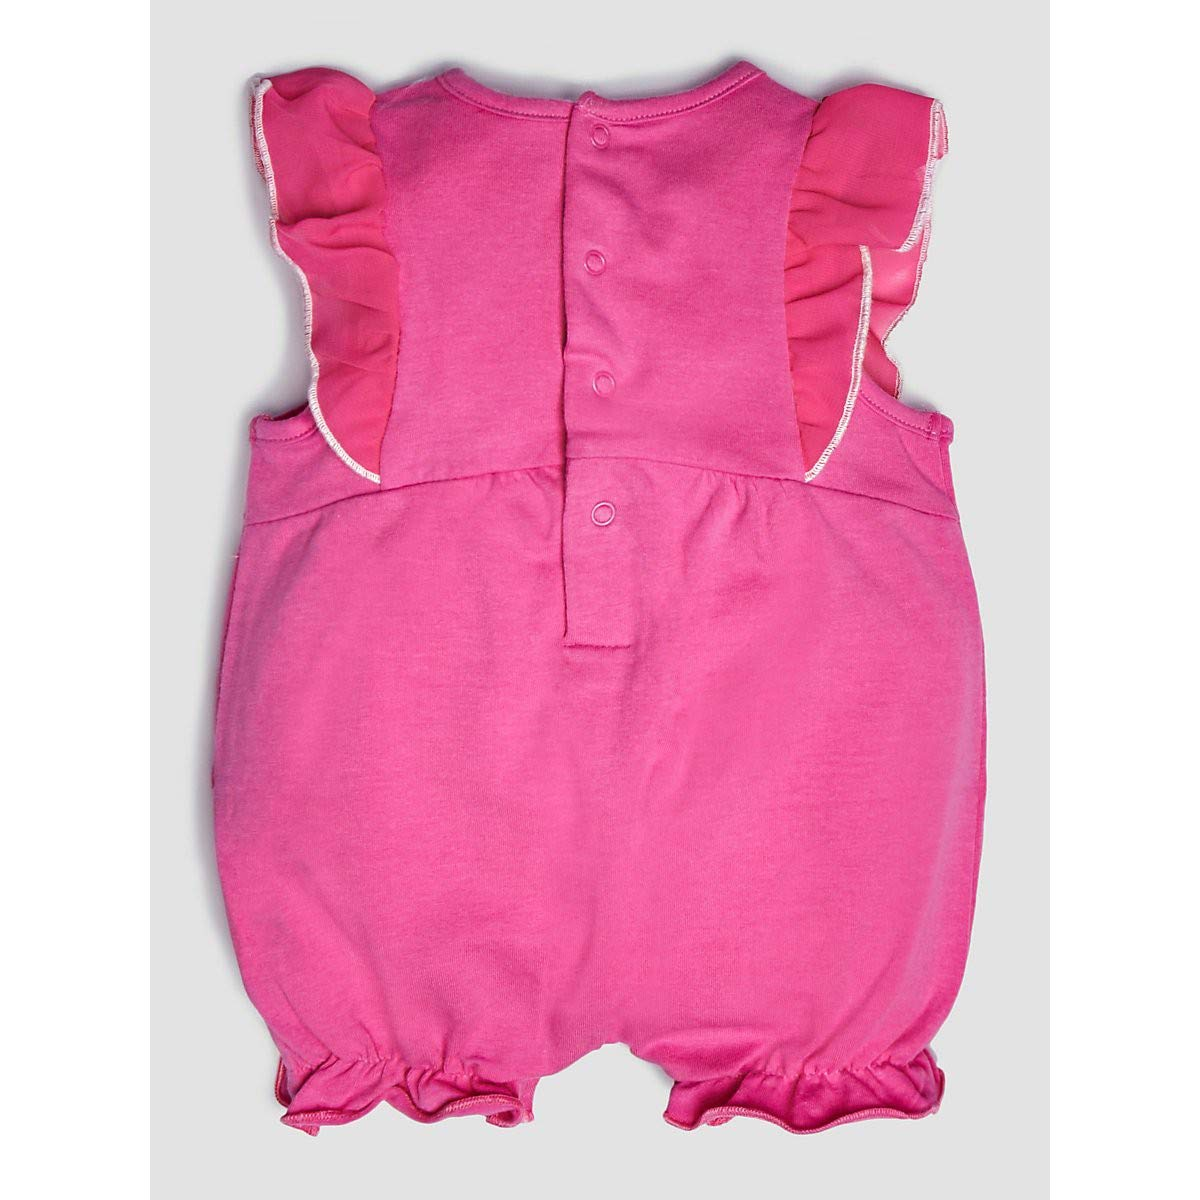 Guess Barboteuse Fille Romper S91g19 Rose